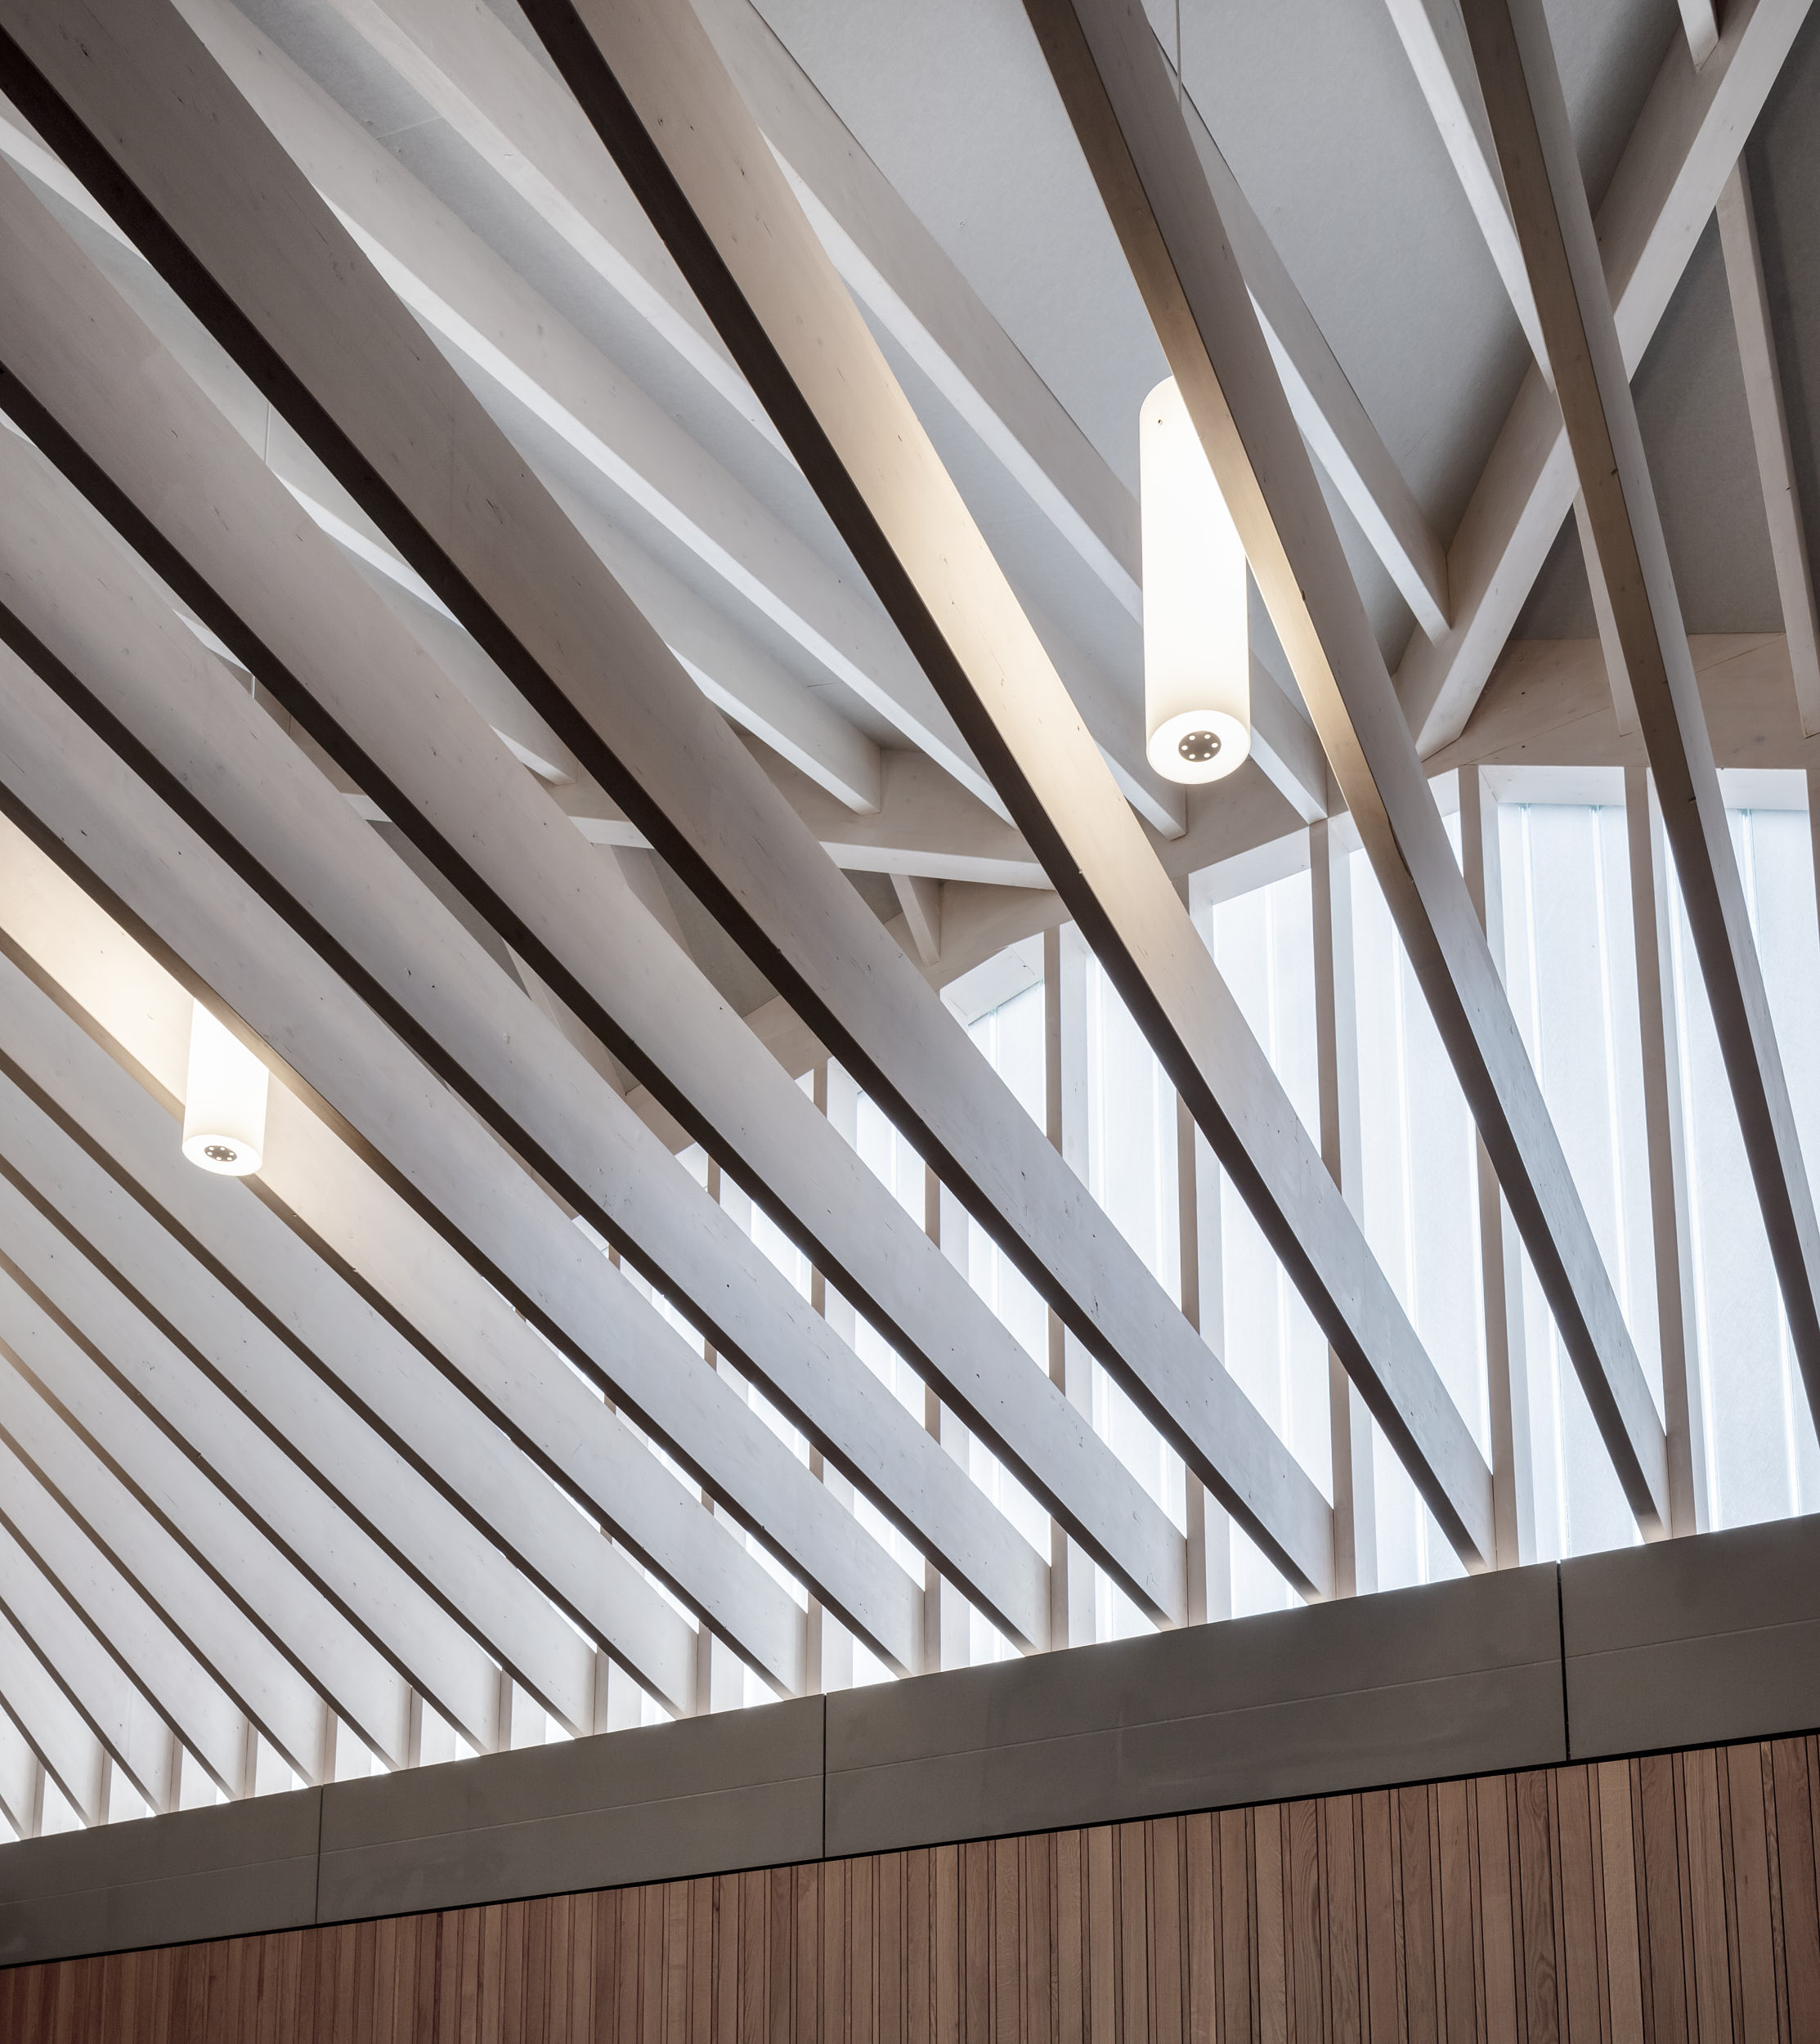 Chapel roof structure is beautifully designed in load-bearing timber.